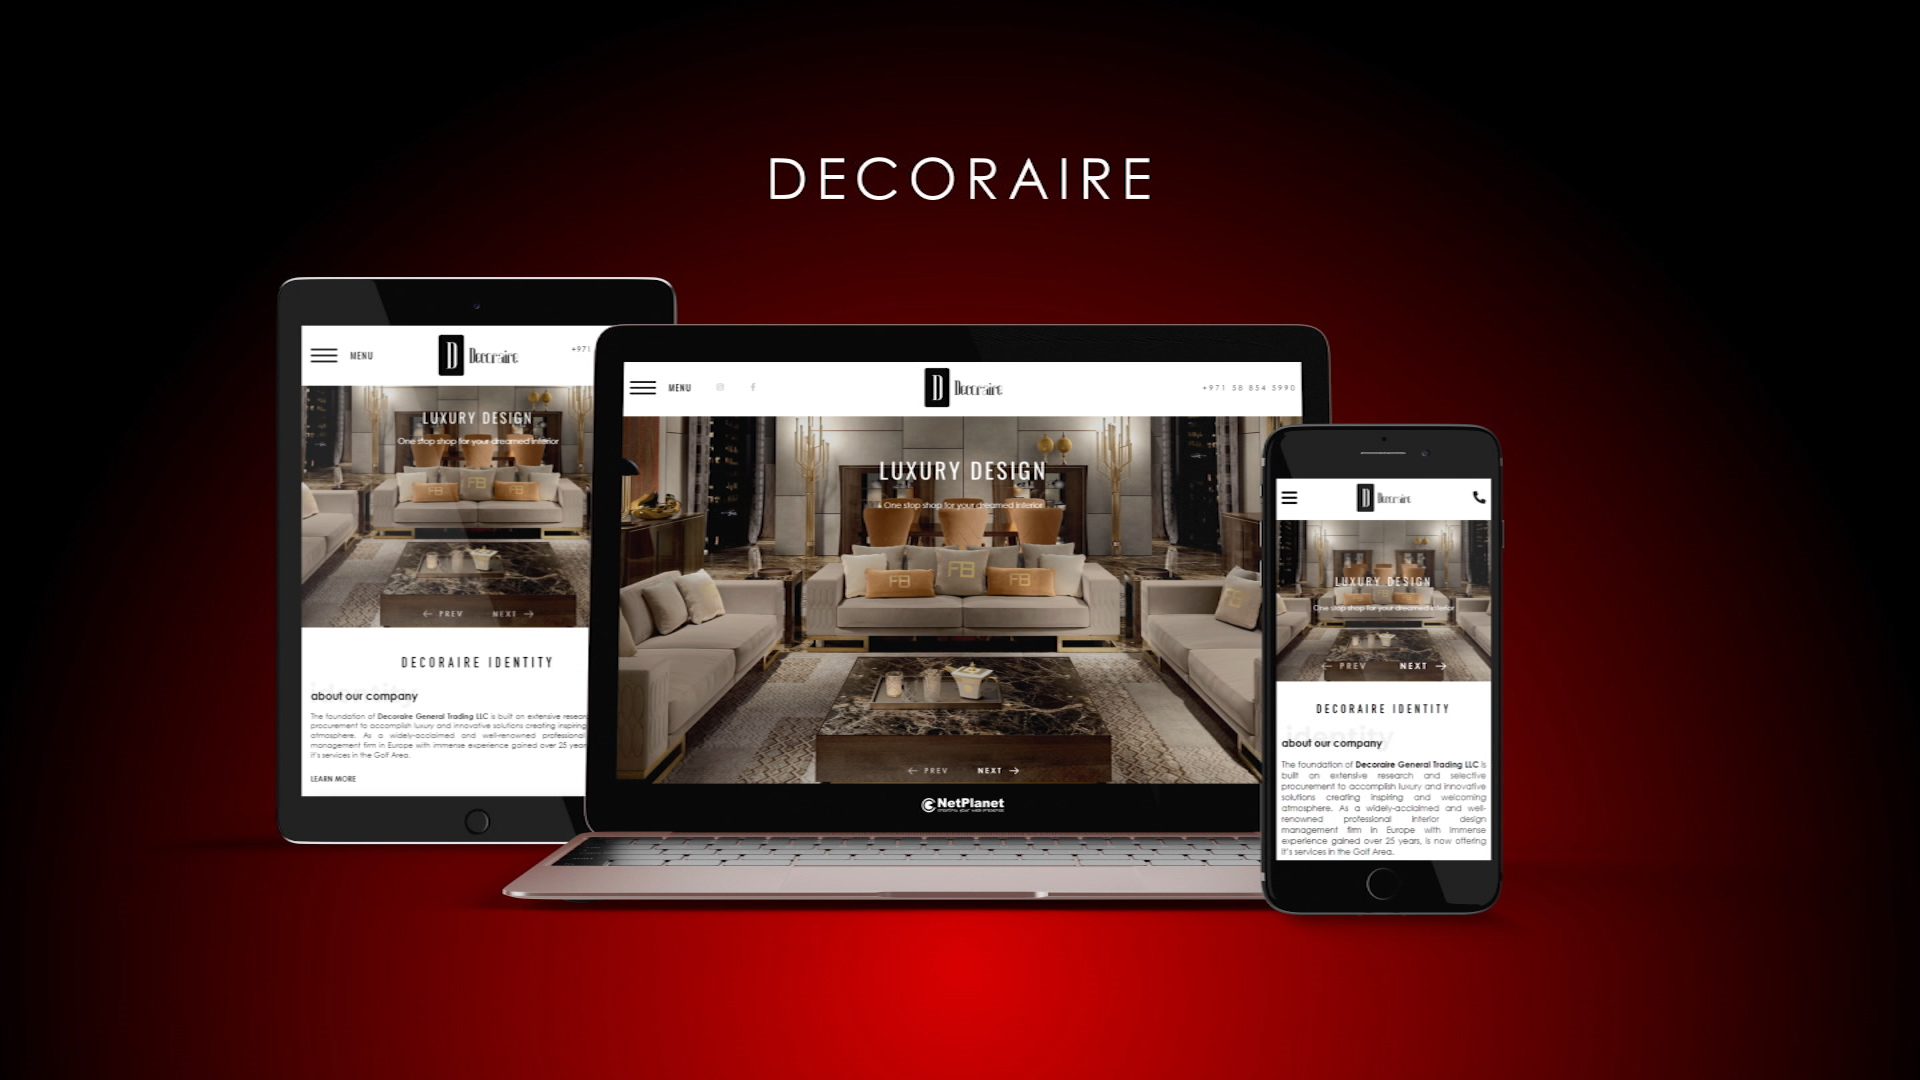 Decoraire_capture